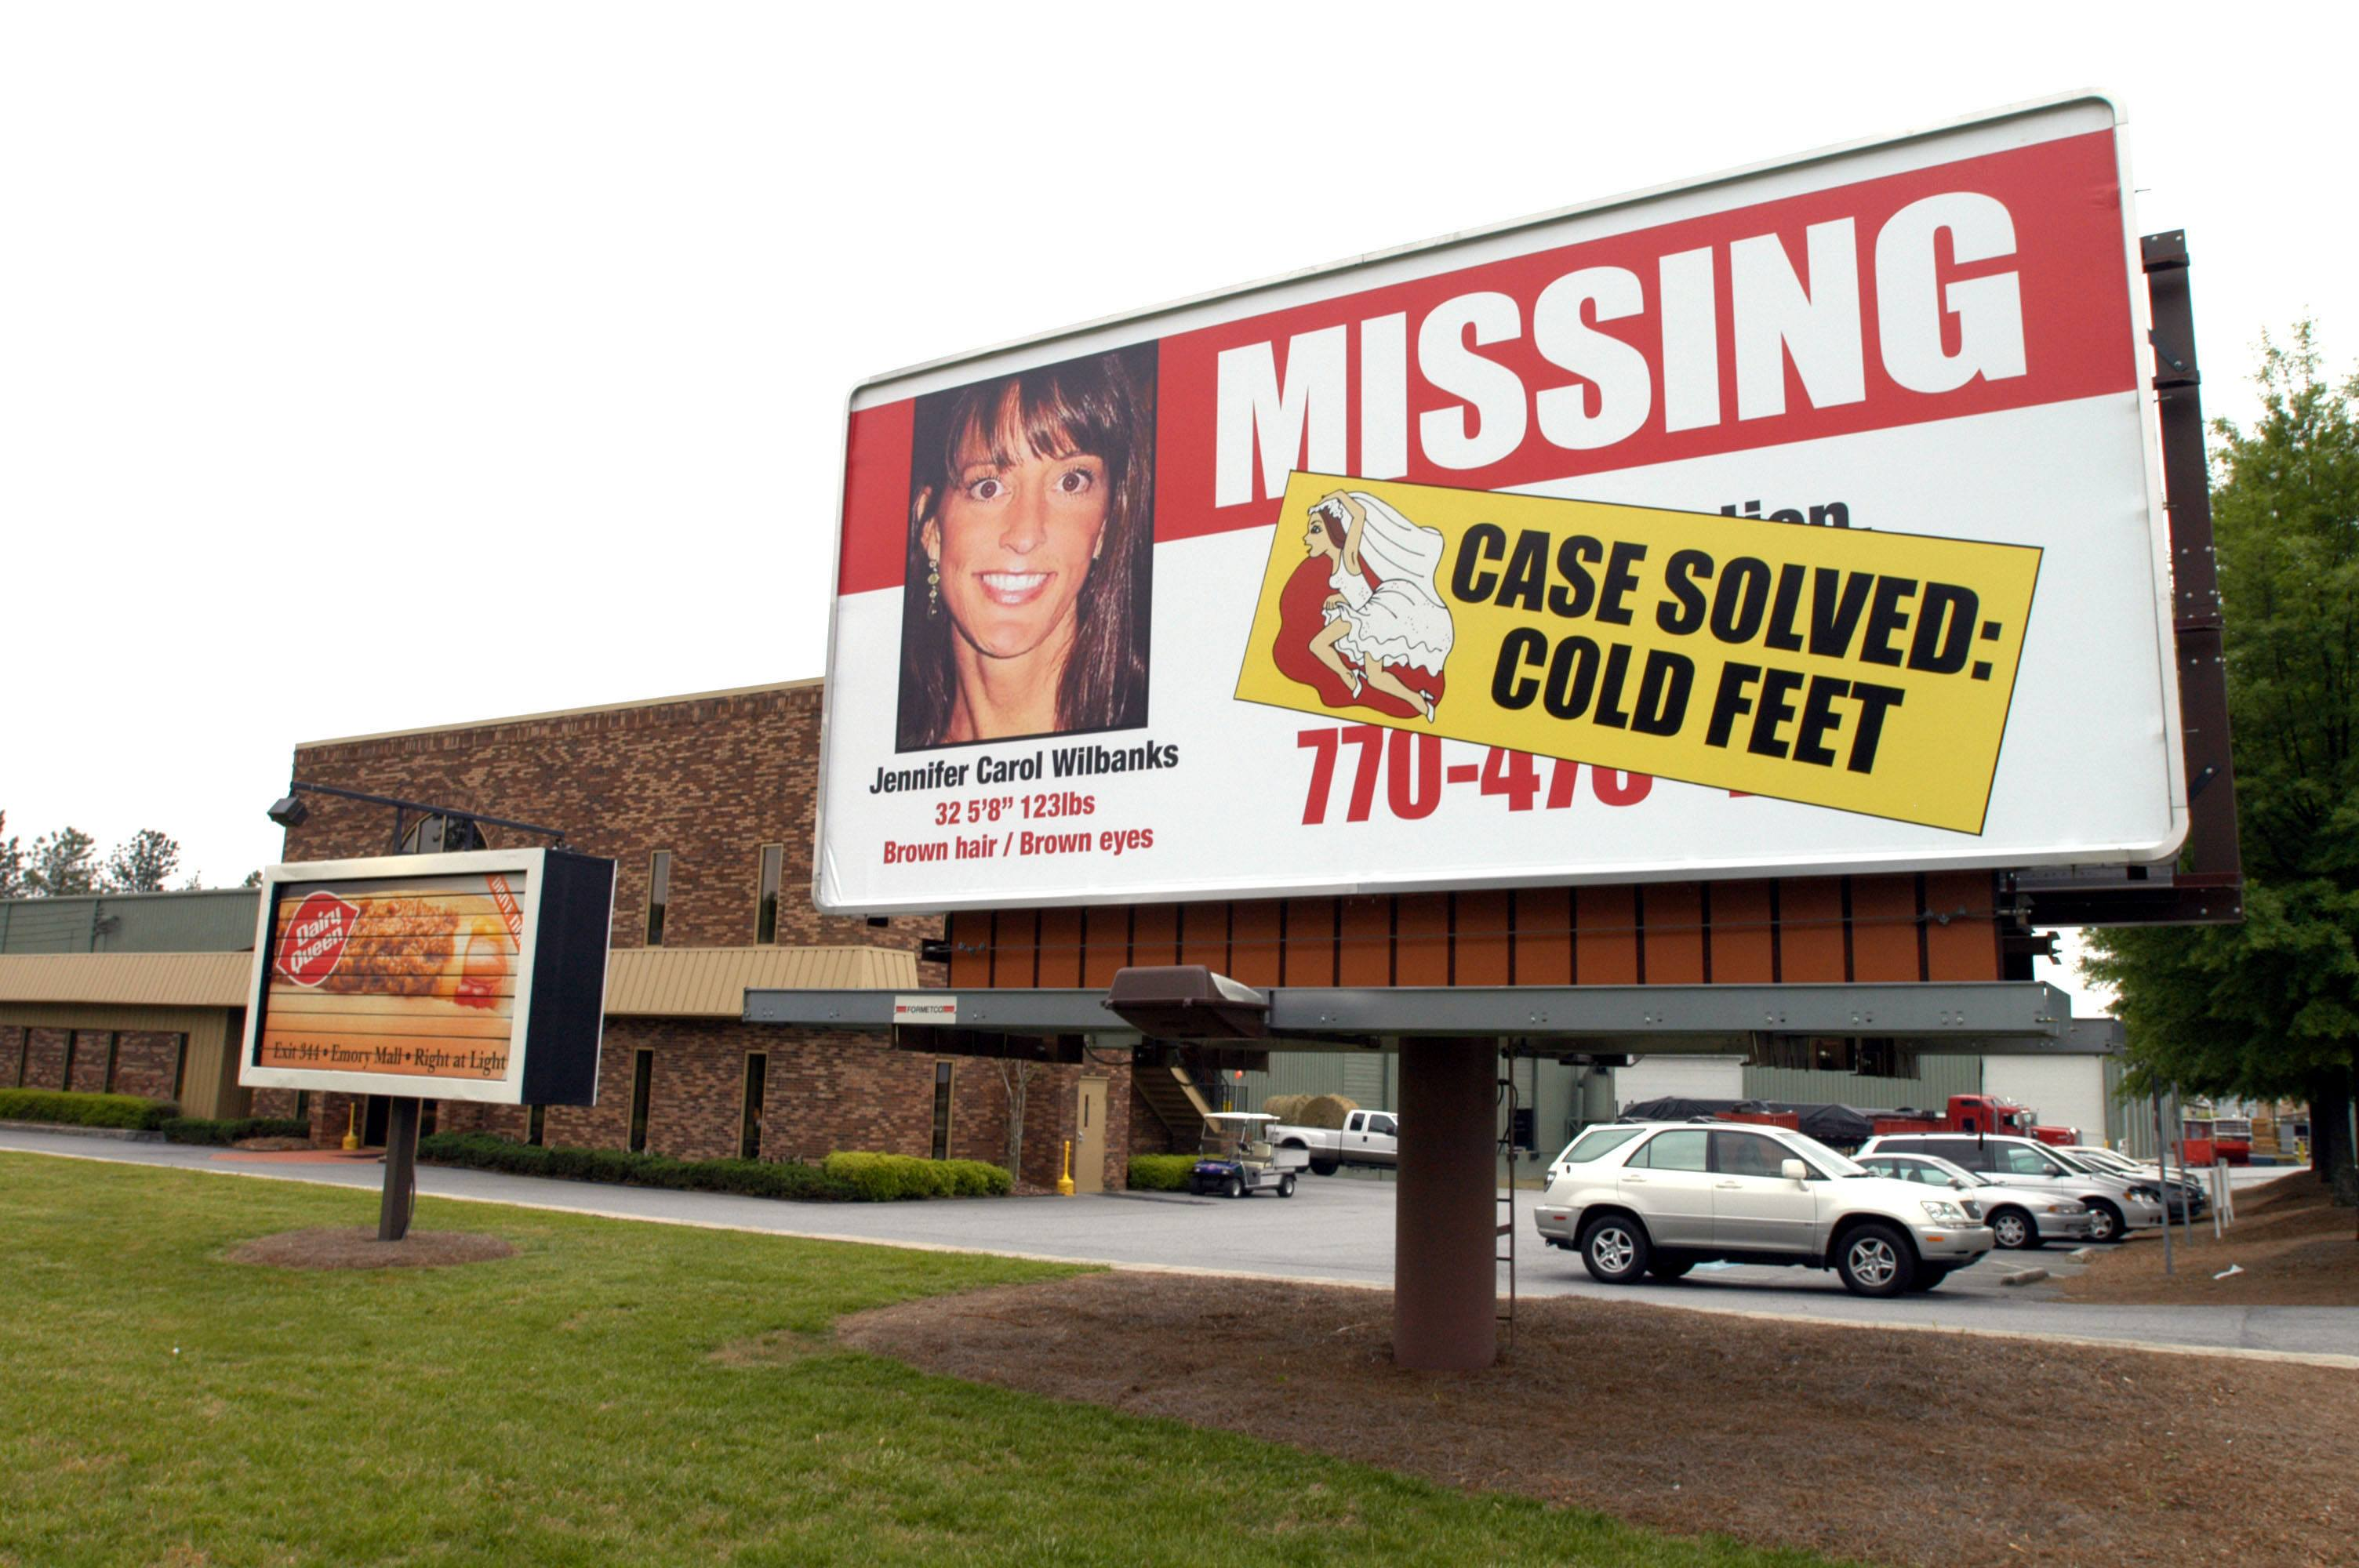 A missing persons billboard